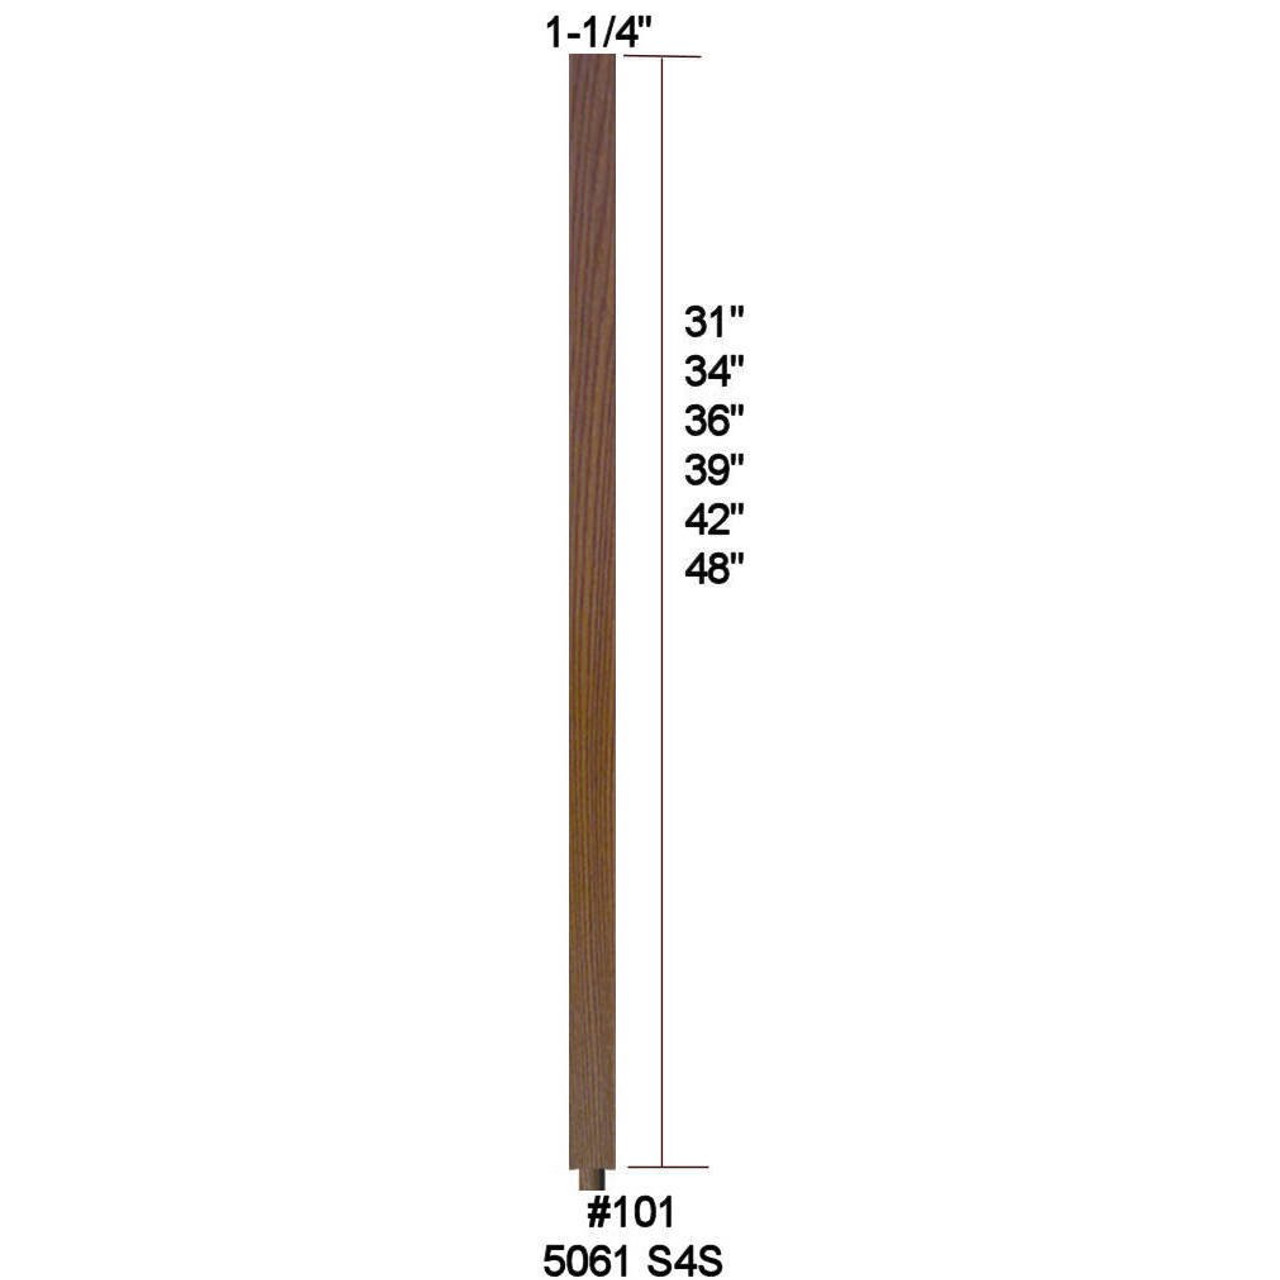 """5060 (101) 1-1/4"""" S4S 34"""" Baluster, with dowel pin shipped separate"""